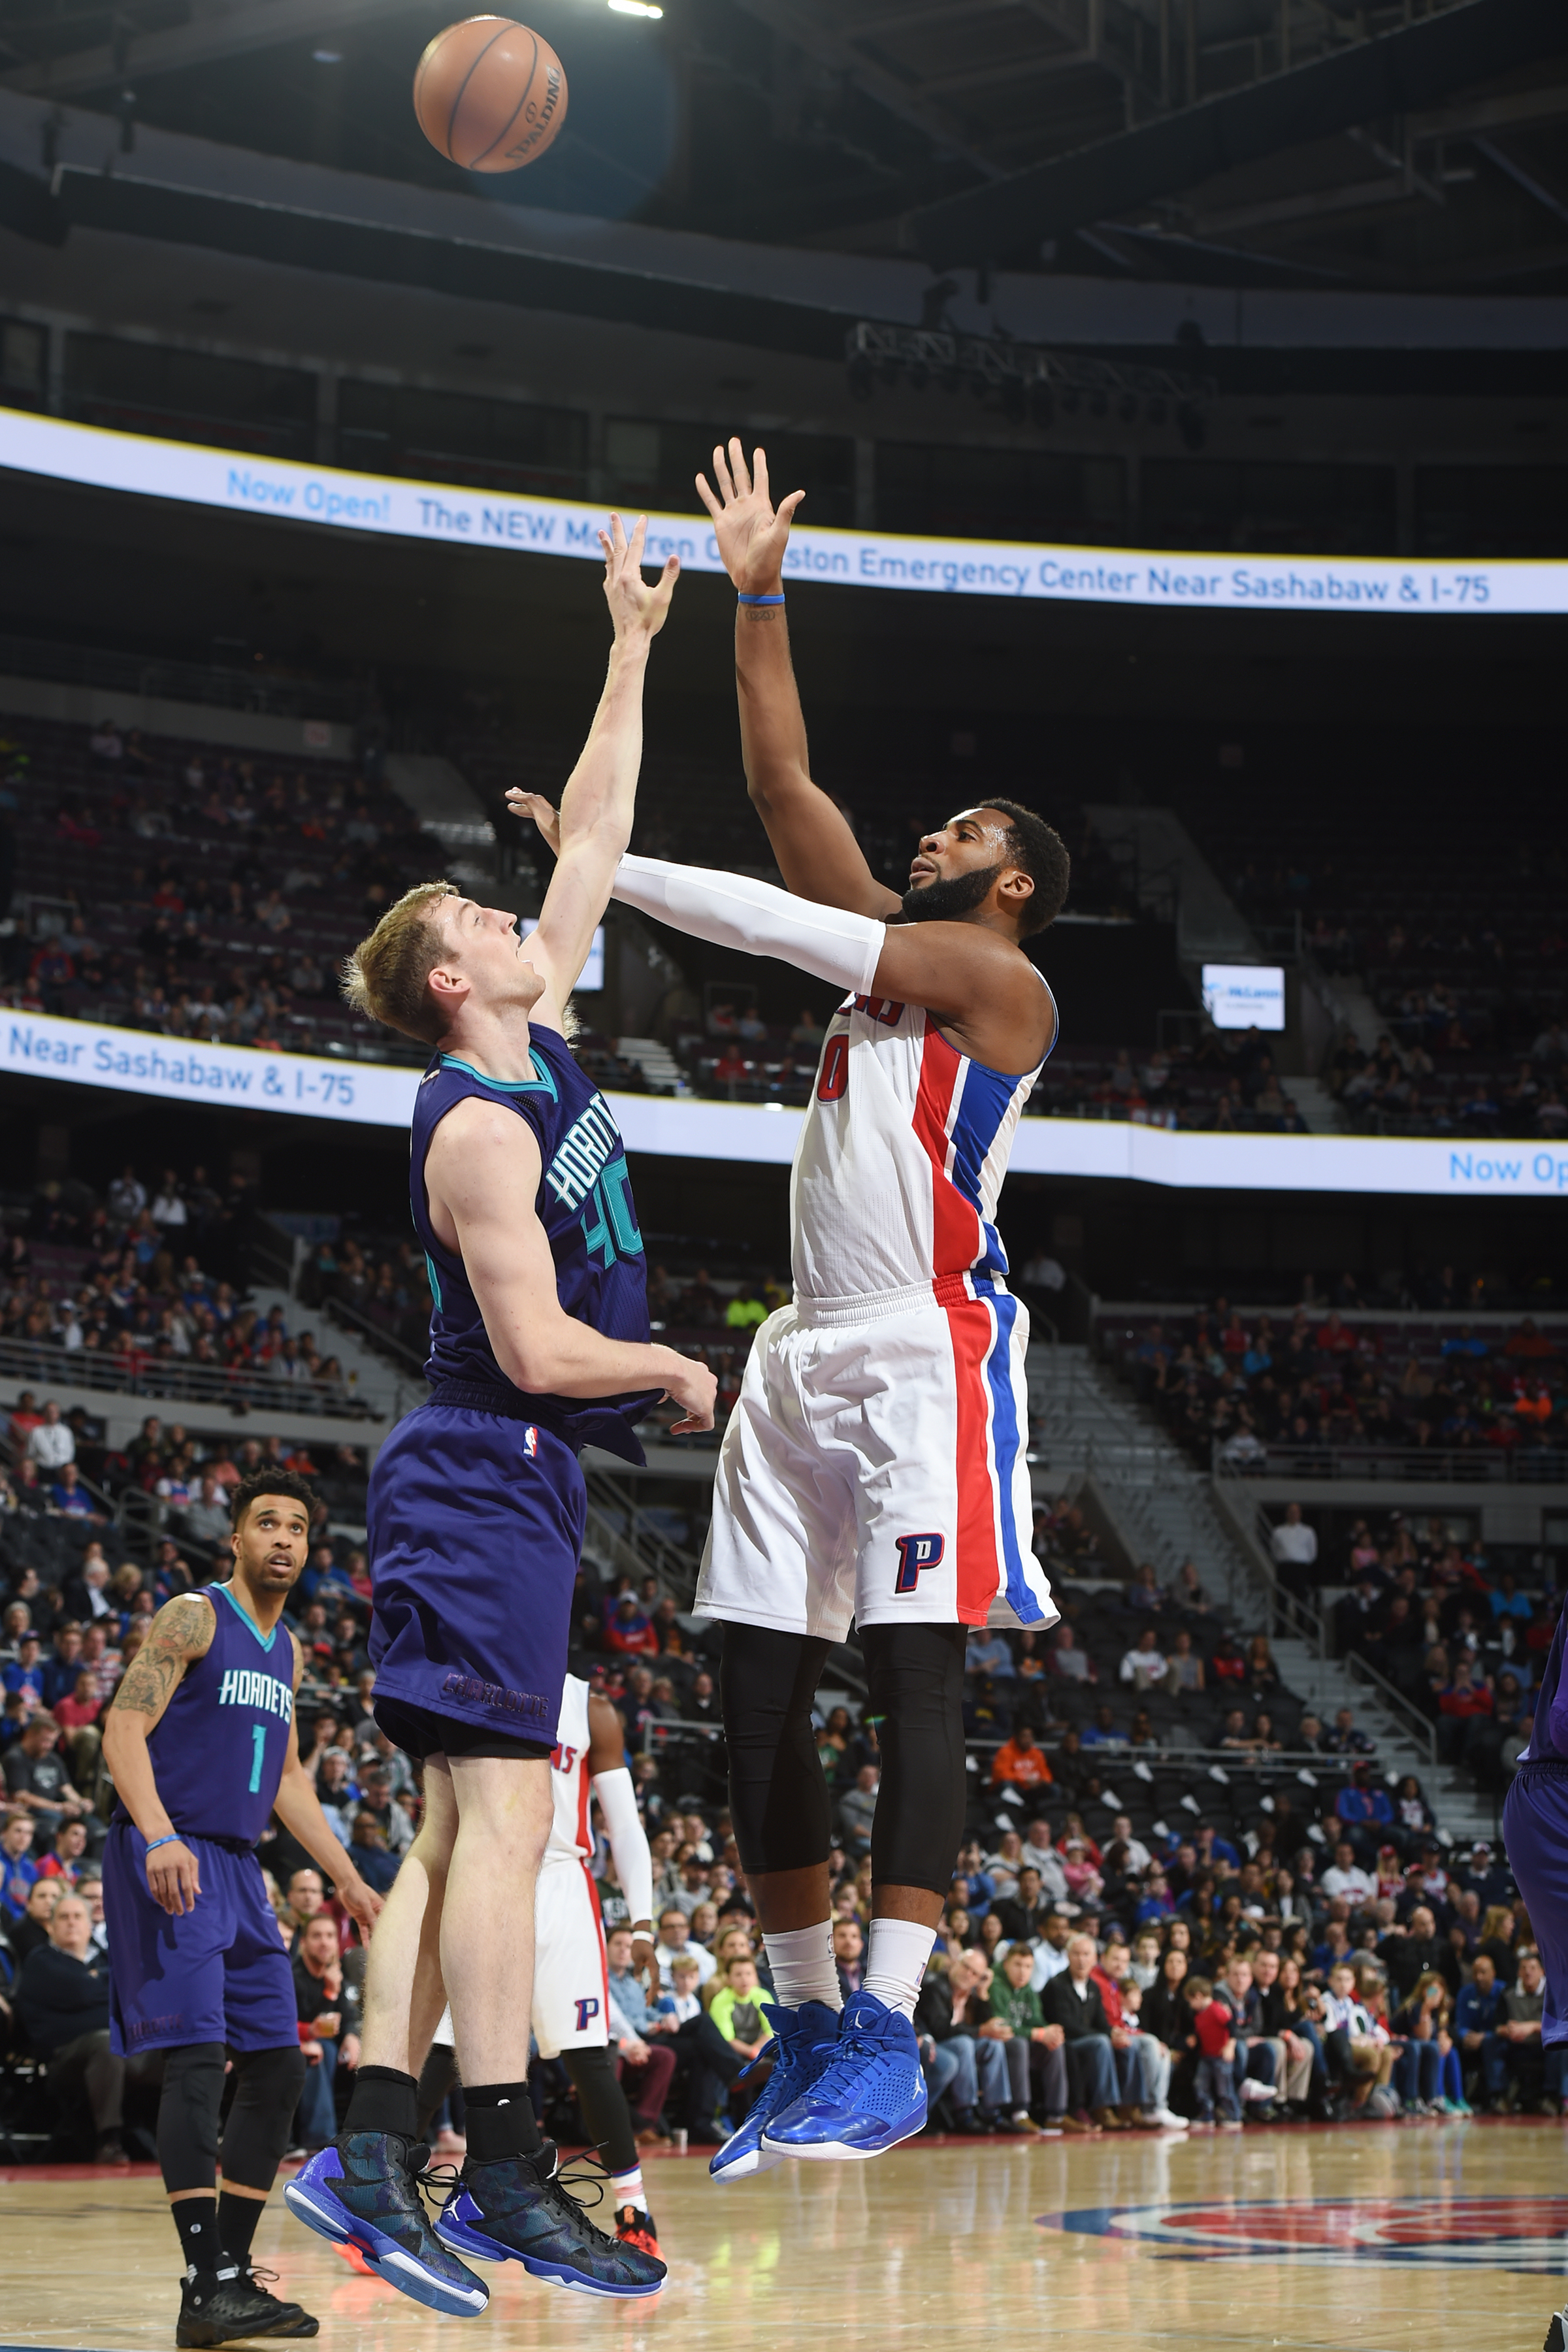 AUBURN HILLS, MI - MARCH 25:  Andre Drummond #0 of the Detroit Pistons shoots the ball against the Charlotte Hornets on March 25, 2016 at The Palace of Auburn Hills in Auburn Hills, Michigan. (Photo by Allen Einstein/NBAE via Getty Images)